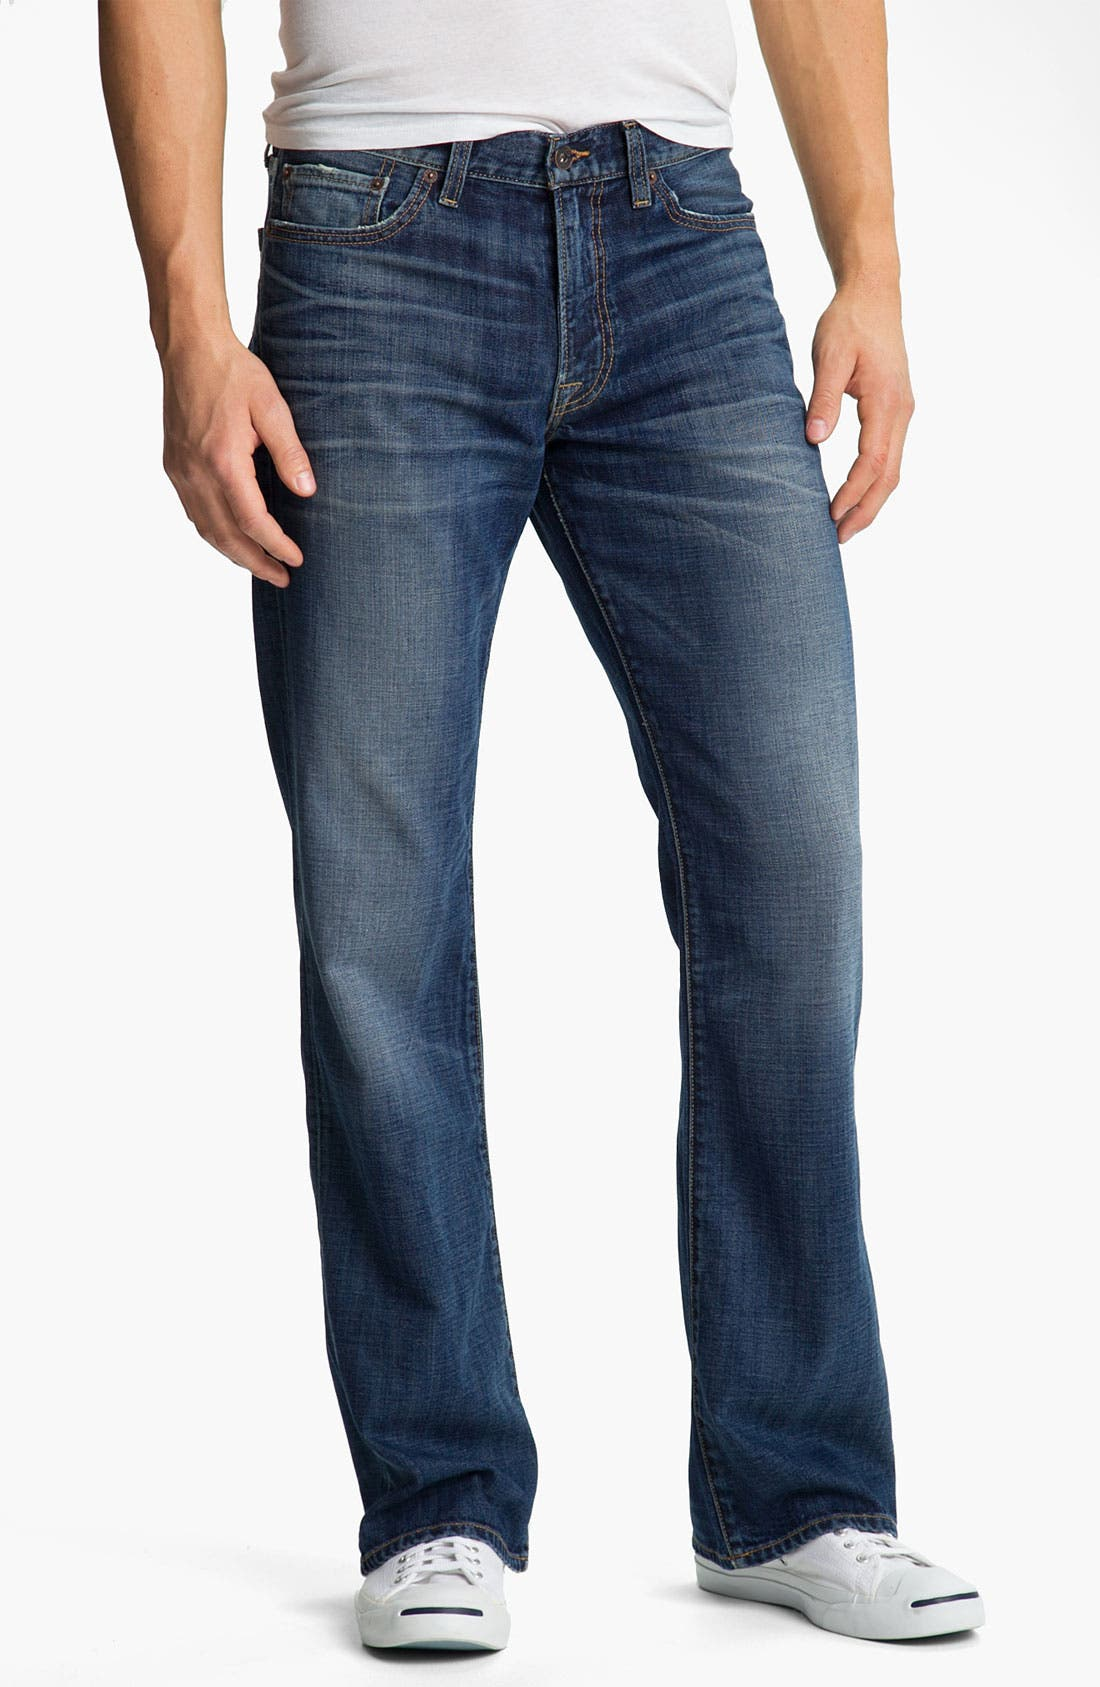 Alternate Image 1 Selected - Lucky Brand Bootcut Jeans (Medium Edwin Warner)